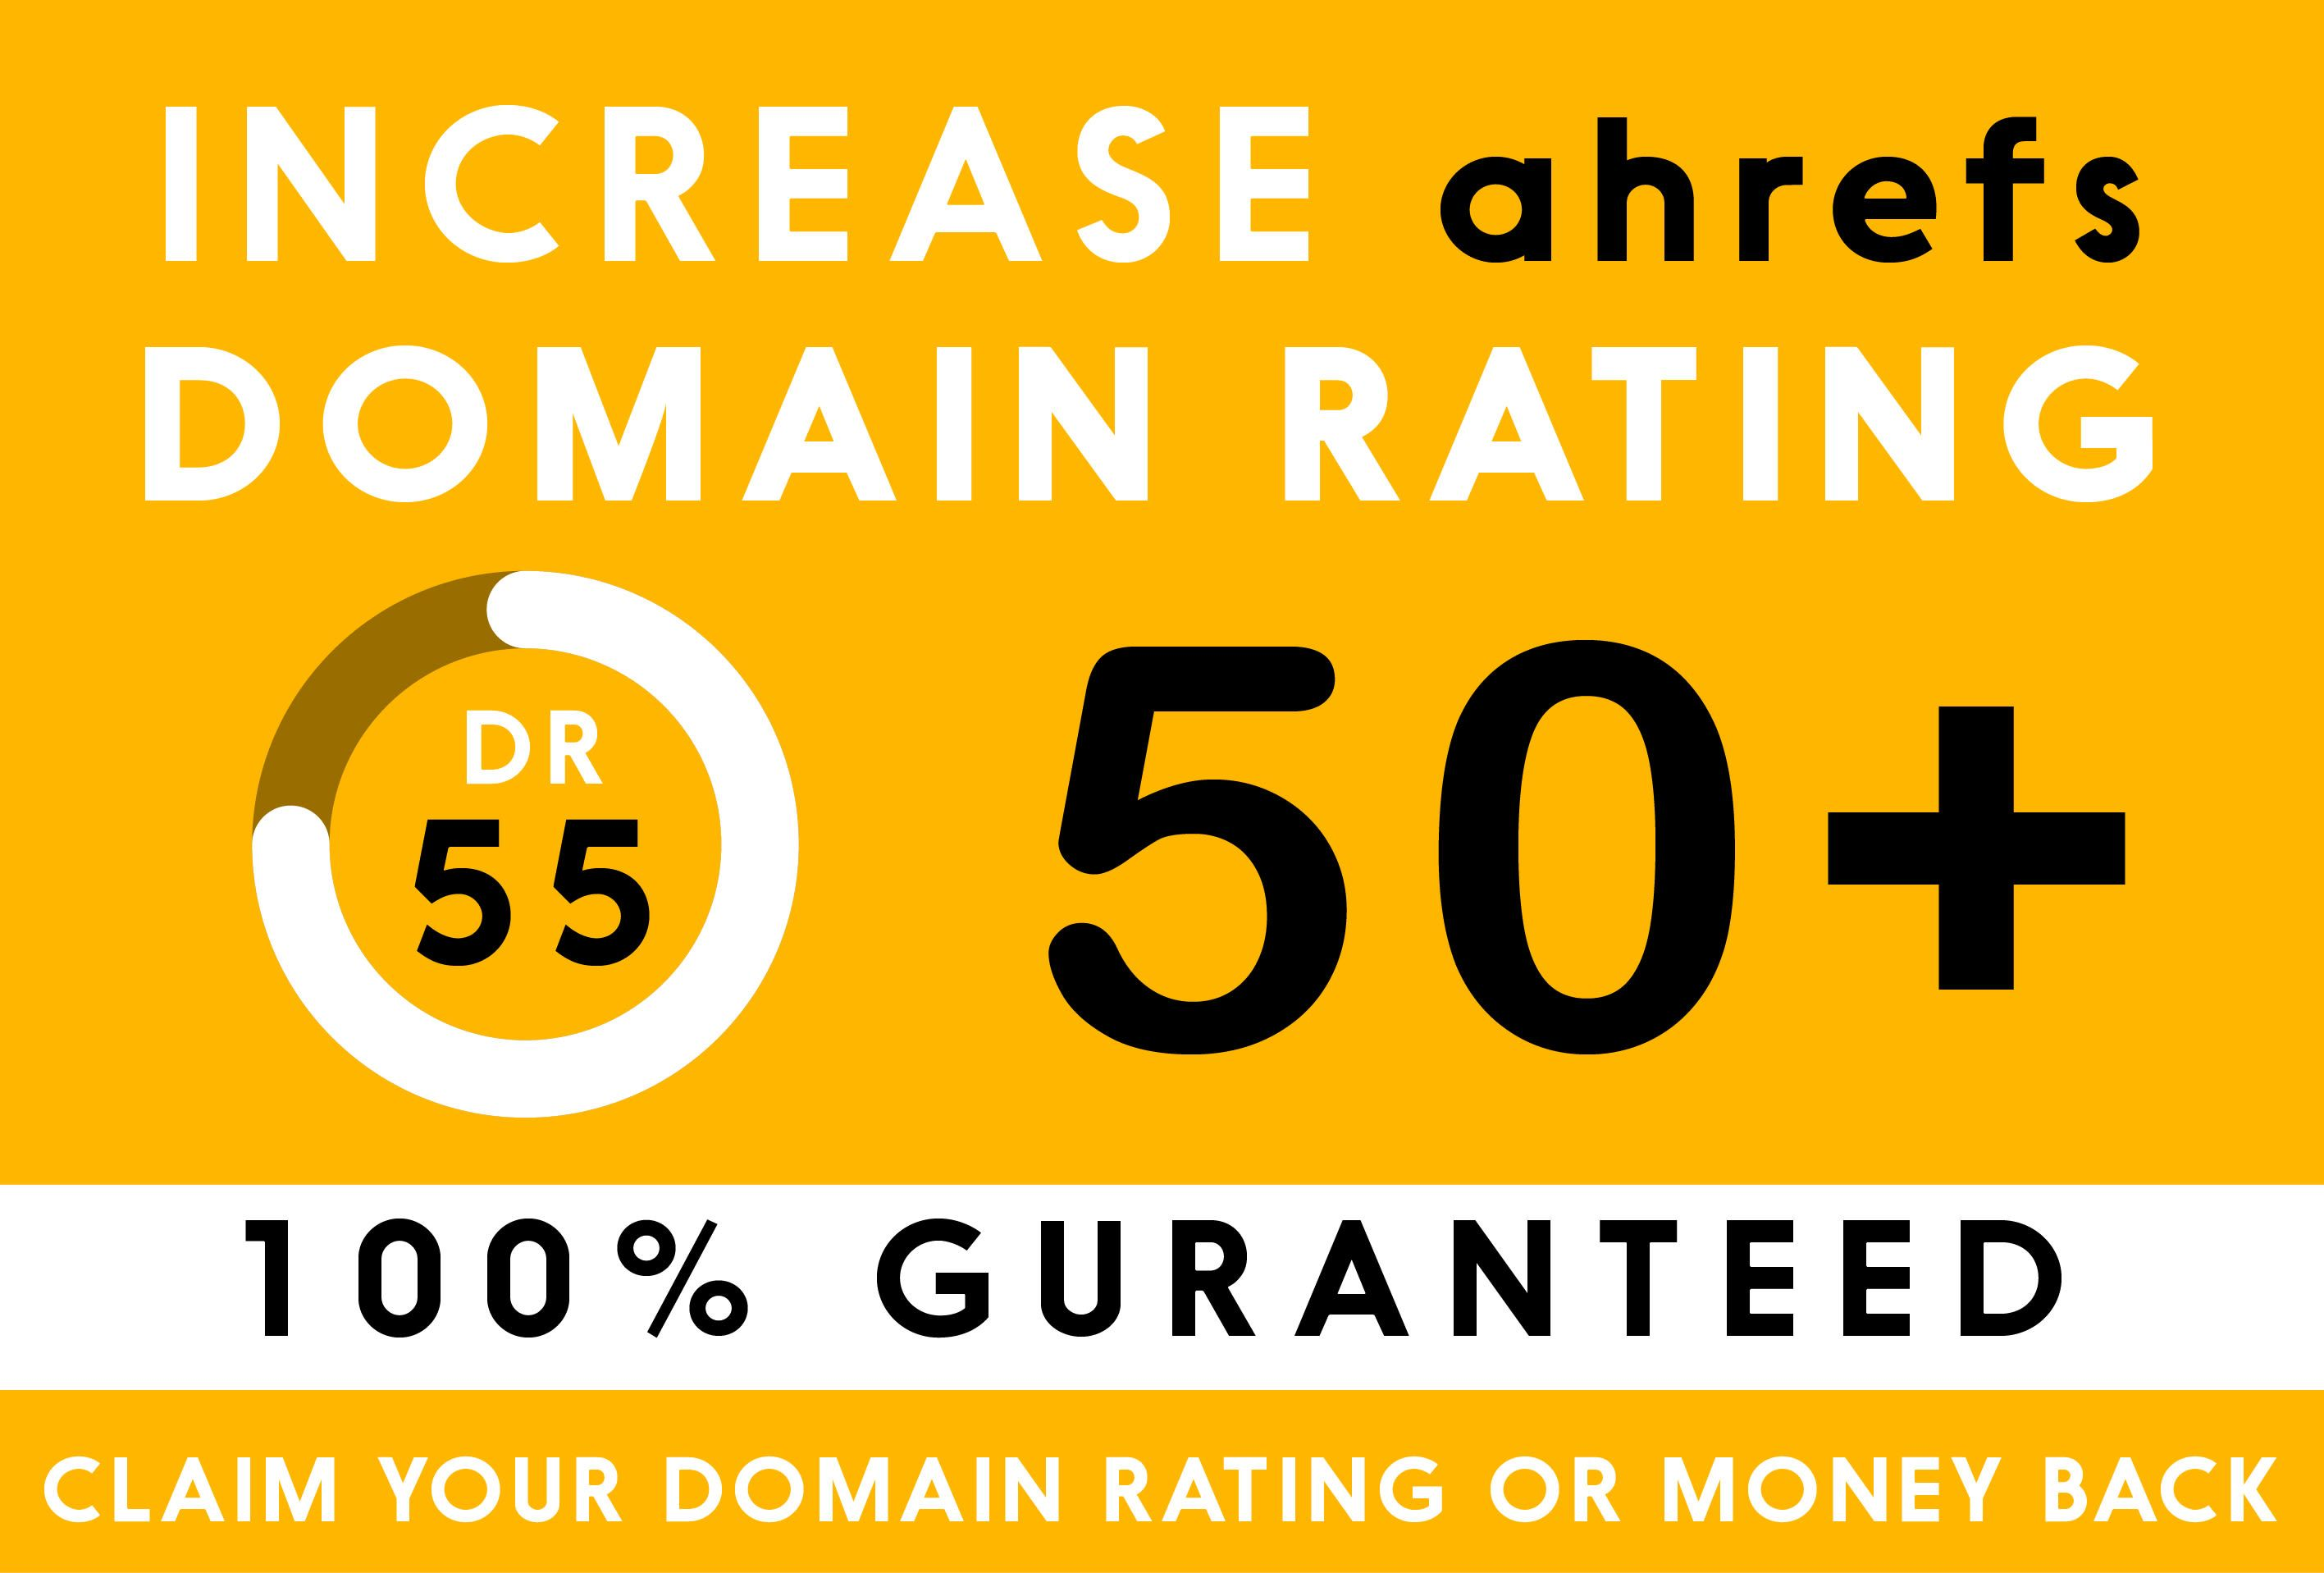 I will increase domain rating and increase ahrefs DR upto 60